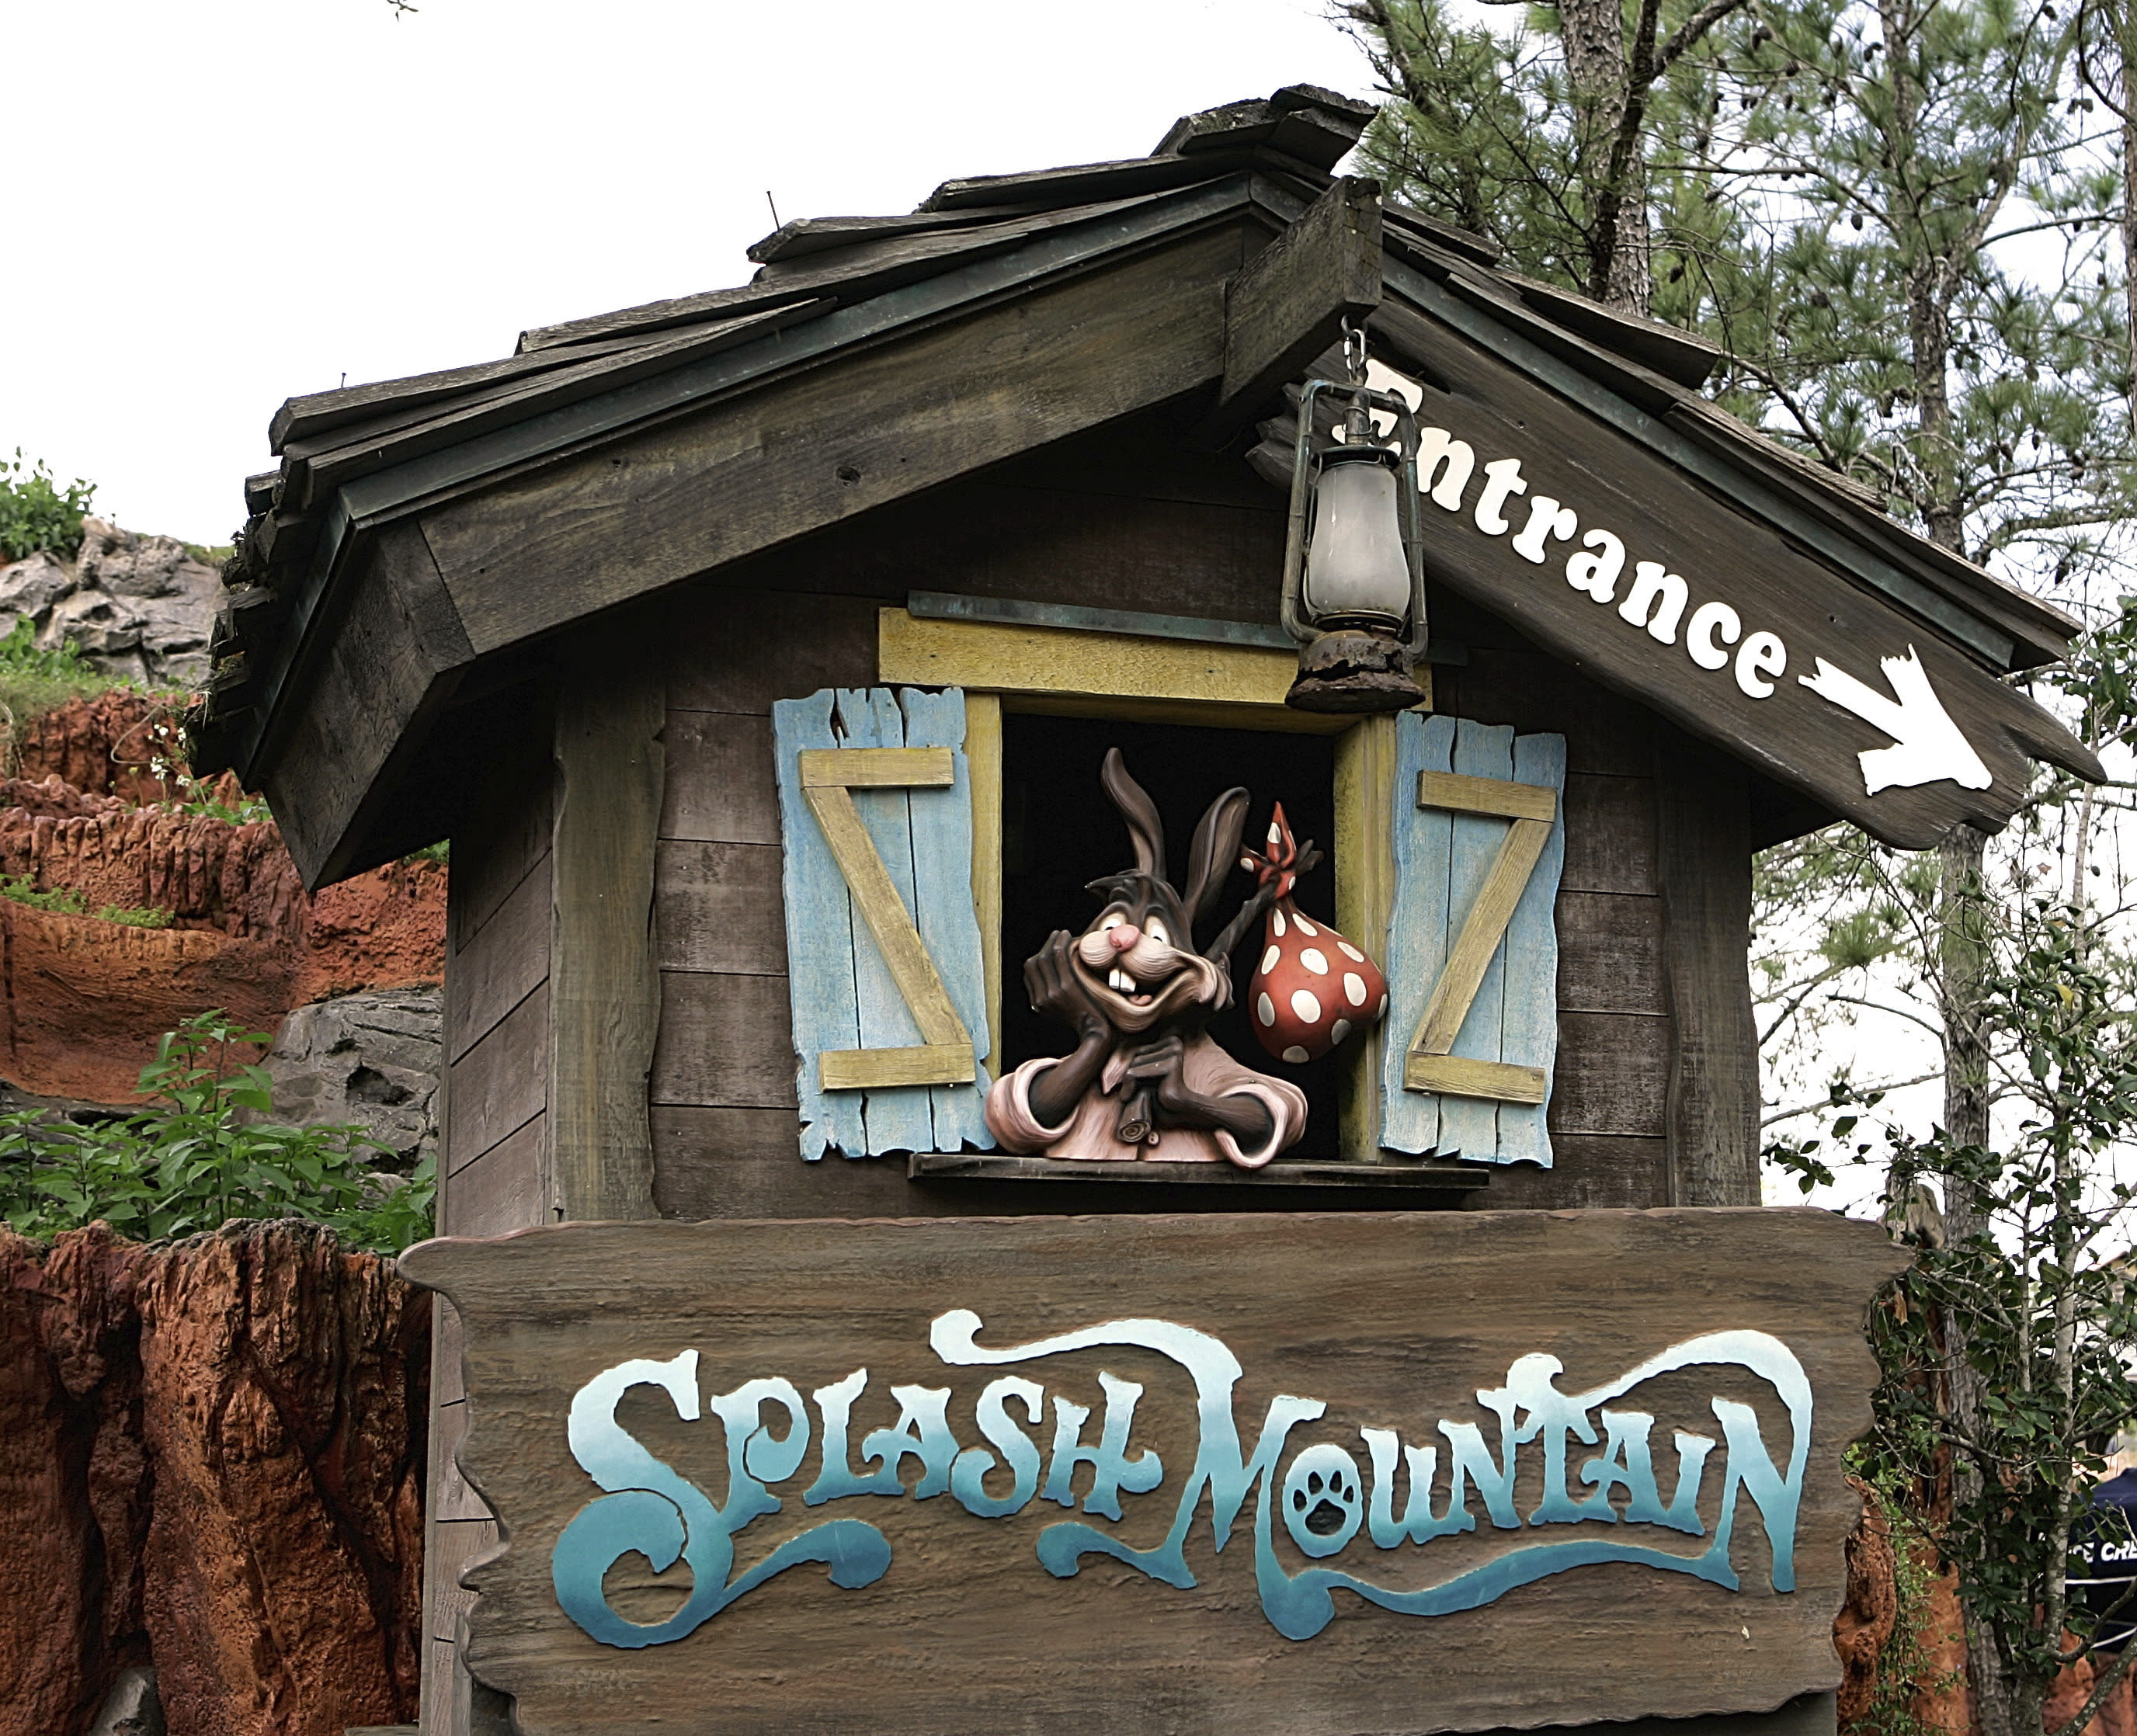 """FILE- In this March 21, 2007 file photo, the character Brer Rabbit, from the movie, """"Song of the South,"""" is depicted near the entrance to the Splash Mountain ride in the Magic Kingdom at Walt Disney World in Lake Buena Vista, Fla. The Splash Mountain ride at Disney parks in California and Florida is being recast. Disney officials said the ride would no longer be tied to the 1946 movie, """"Song of the South,"""" which many view as racist. Instead, the revamped ride will be inspired by the 2009 Disney film, """"The Princess and the Frog,"""" which has an African-American female lead. (AP Photo/John Raoux, File)"""